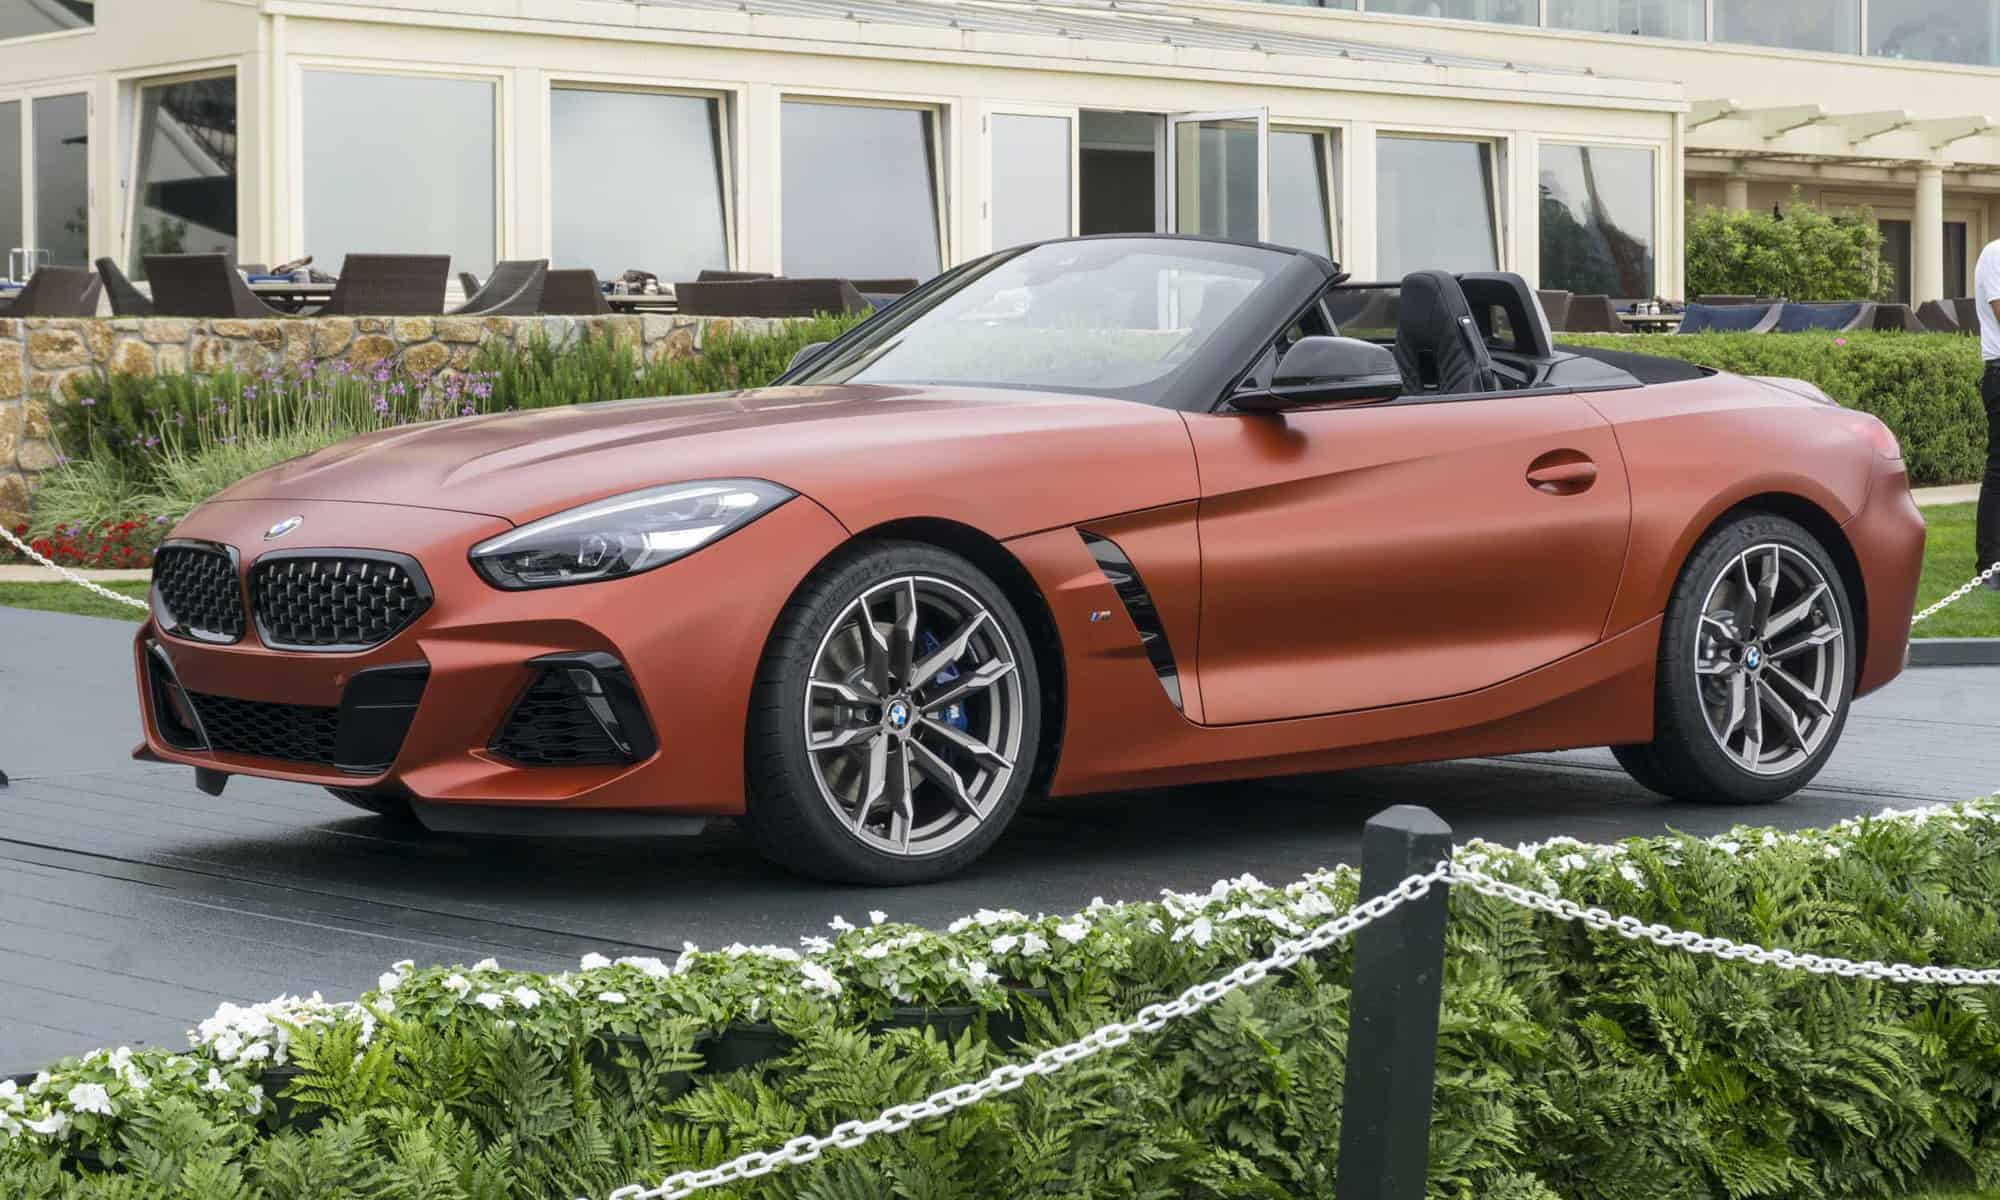 2019 Bmw Z4 Unveiled At Pebble Beach First Look Images